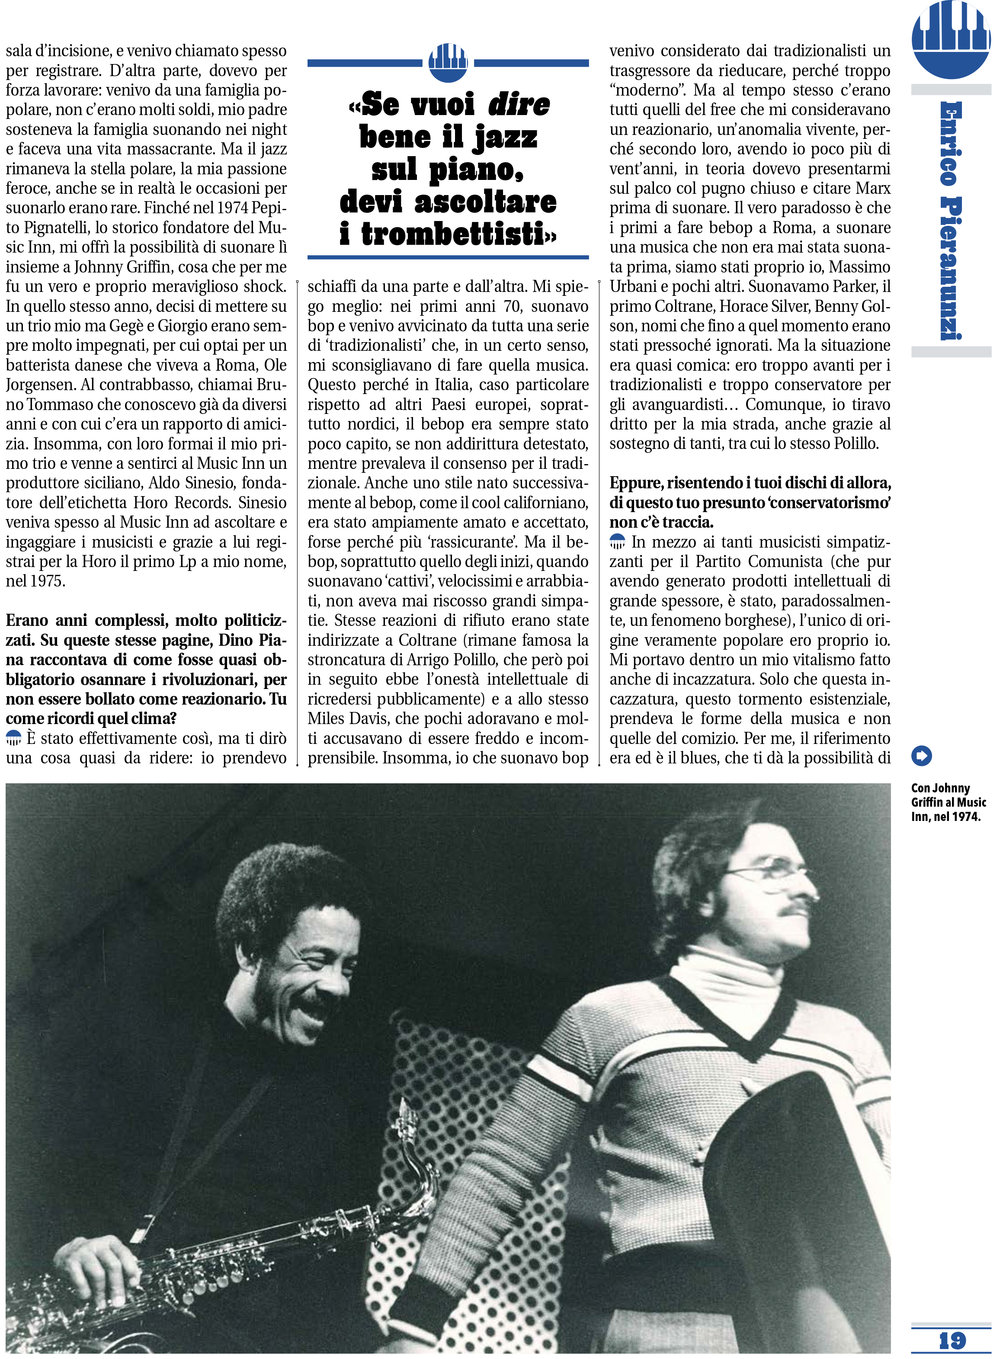 4 estratto Interview Pieranunzi da CJ2_Pagina_5 c.jpg